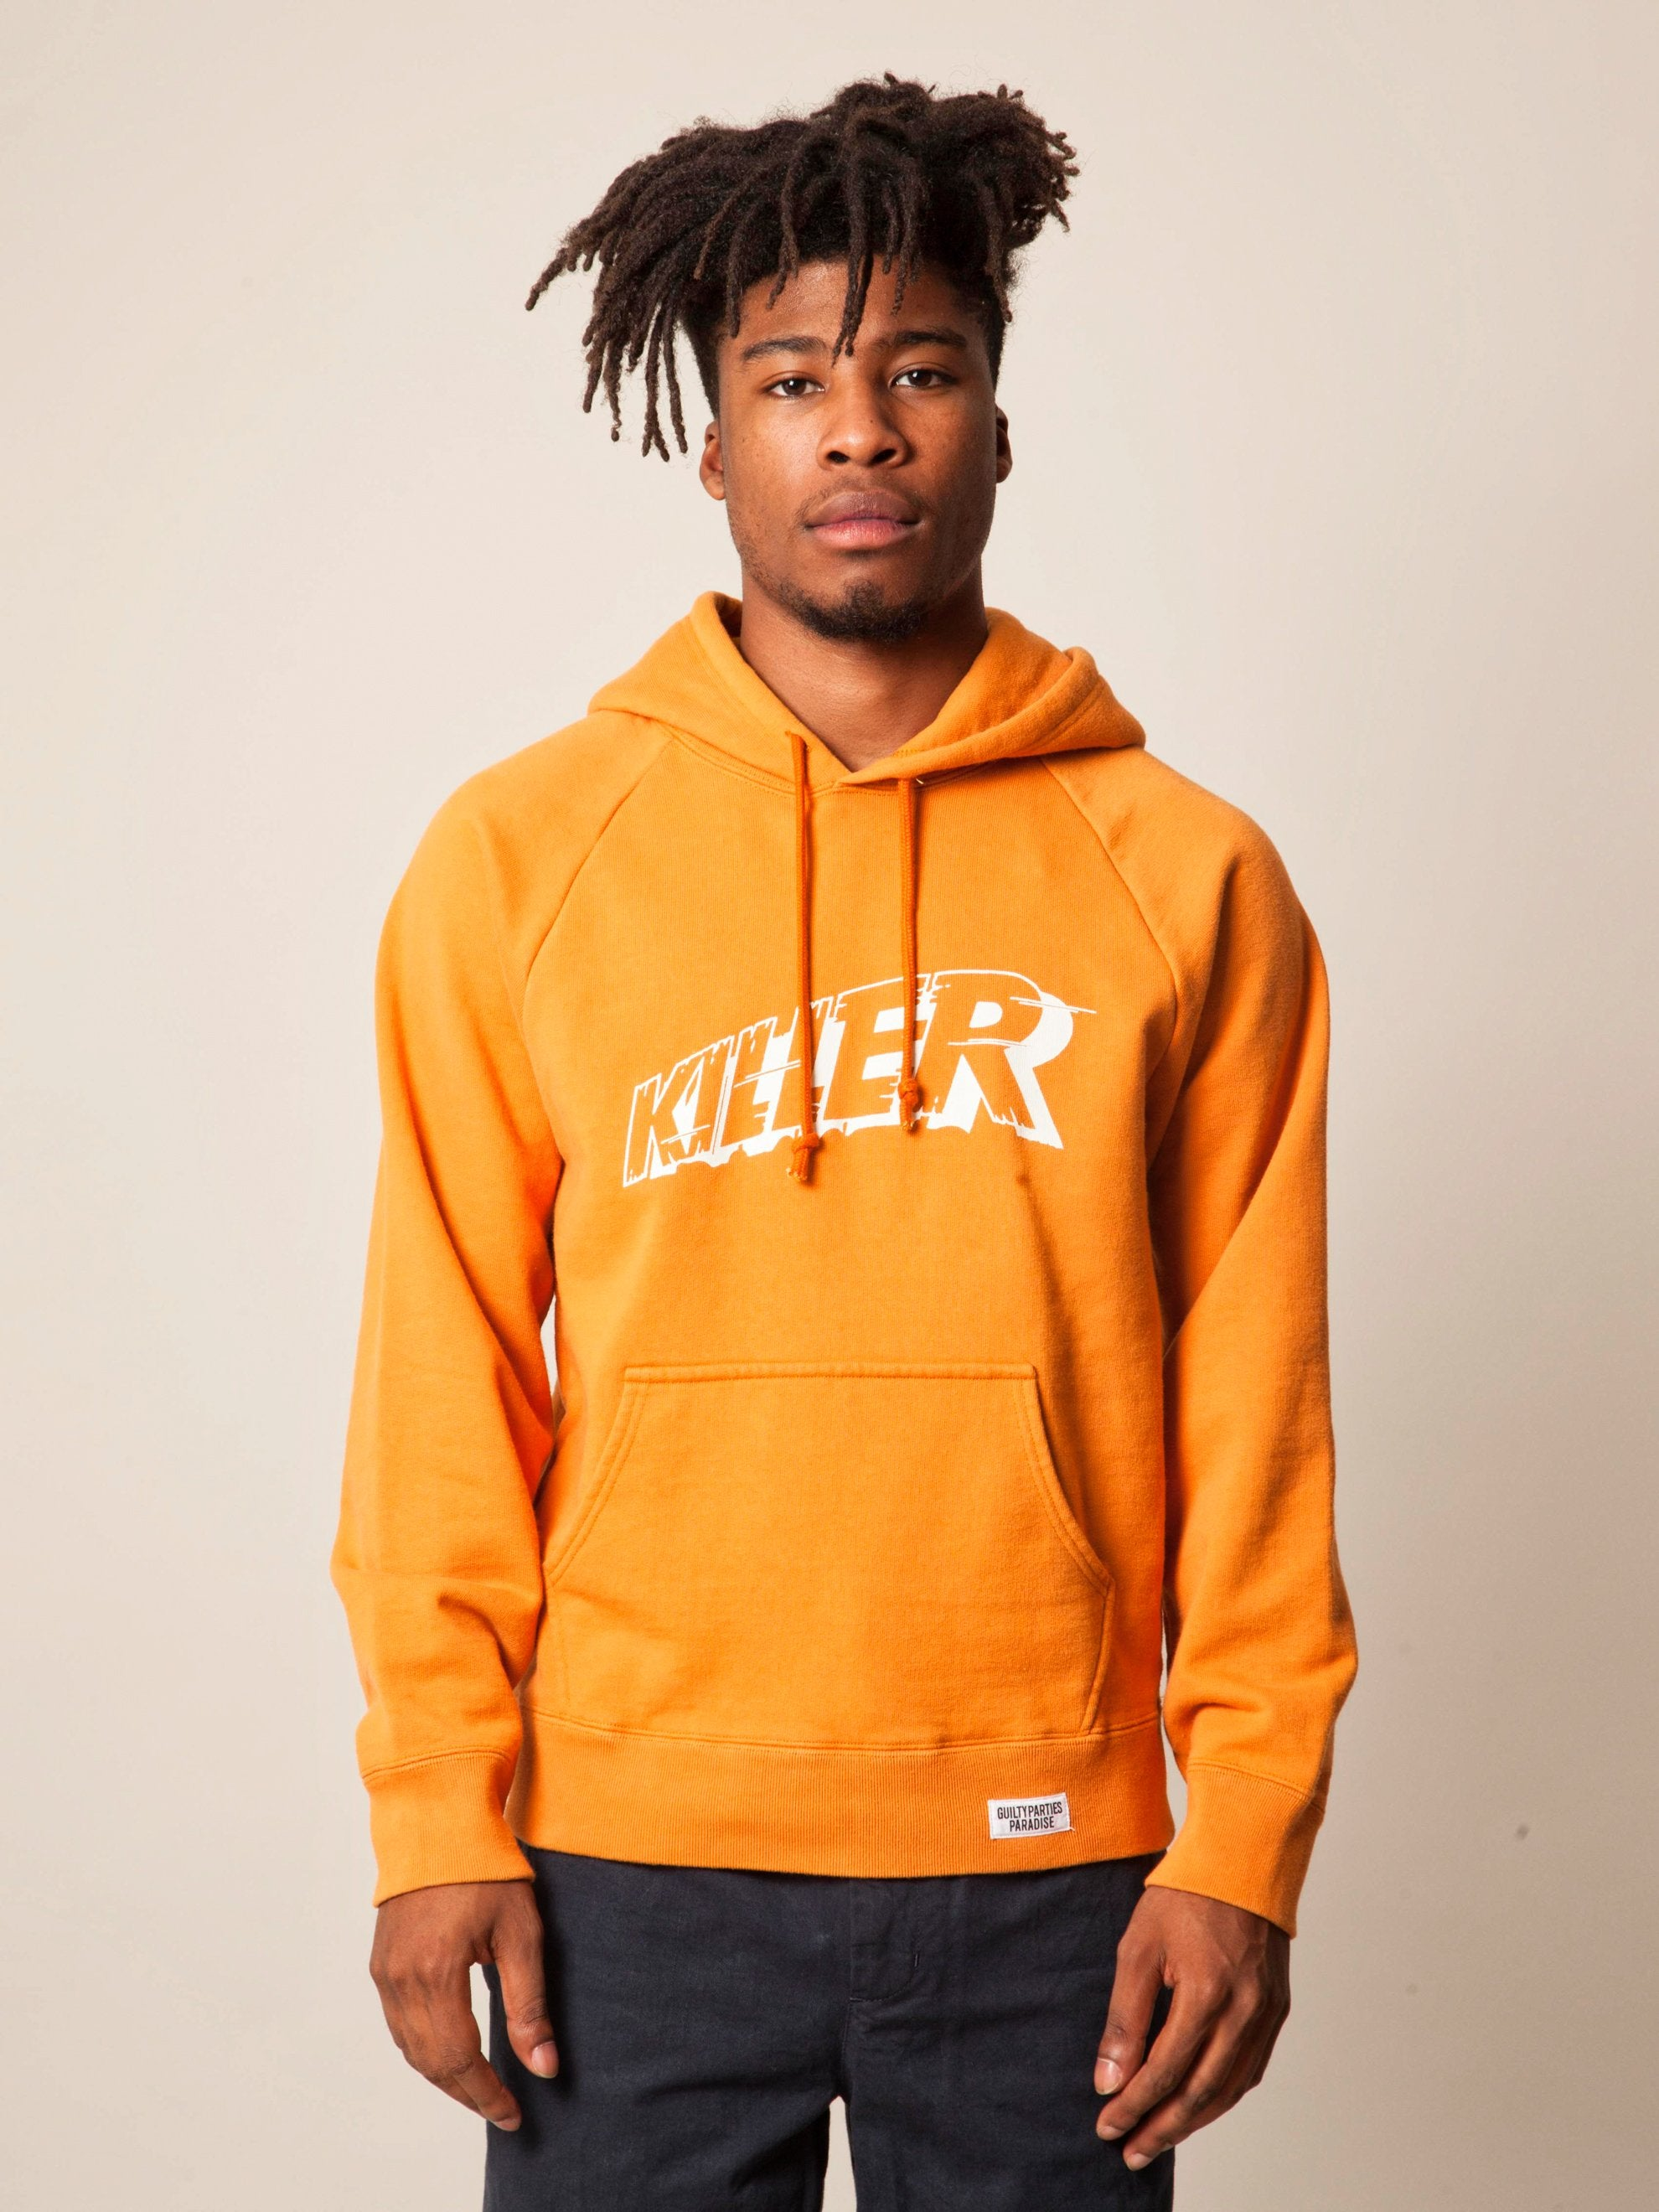 Orange Washed Heavy Weight Pullover Hooded Sweatshirt (Type-3) 2